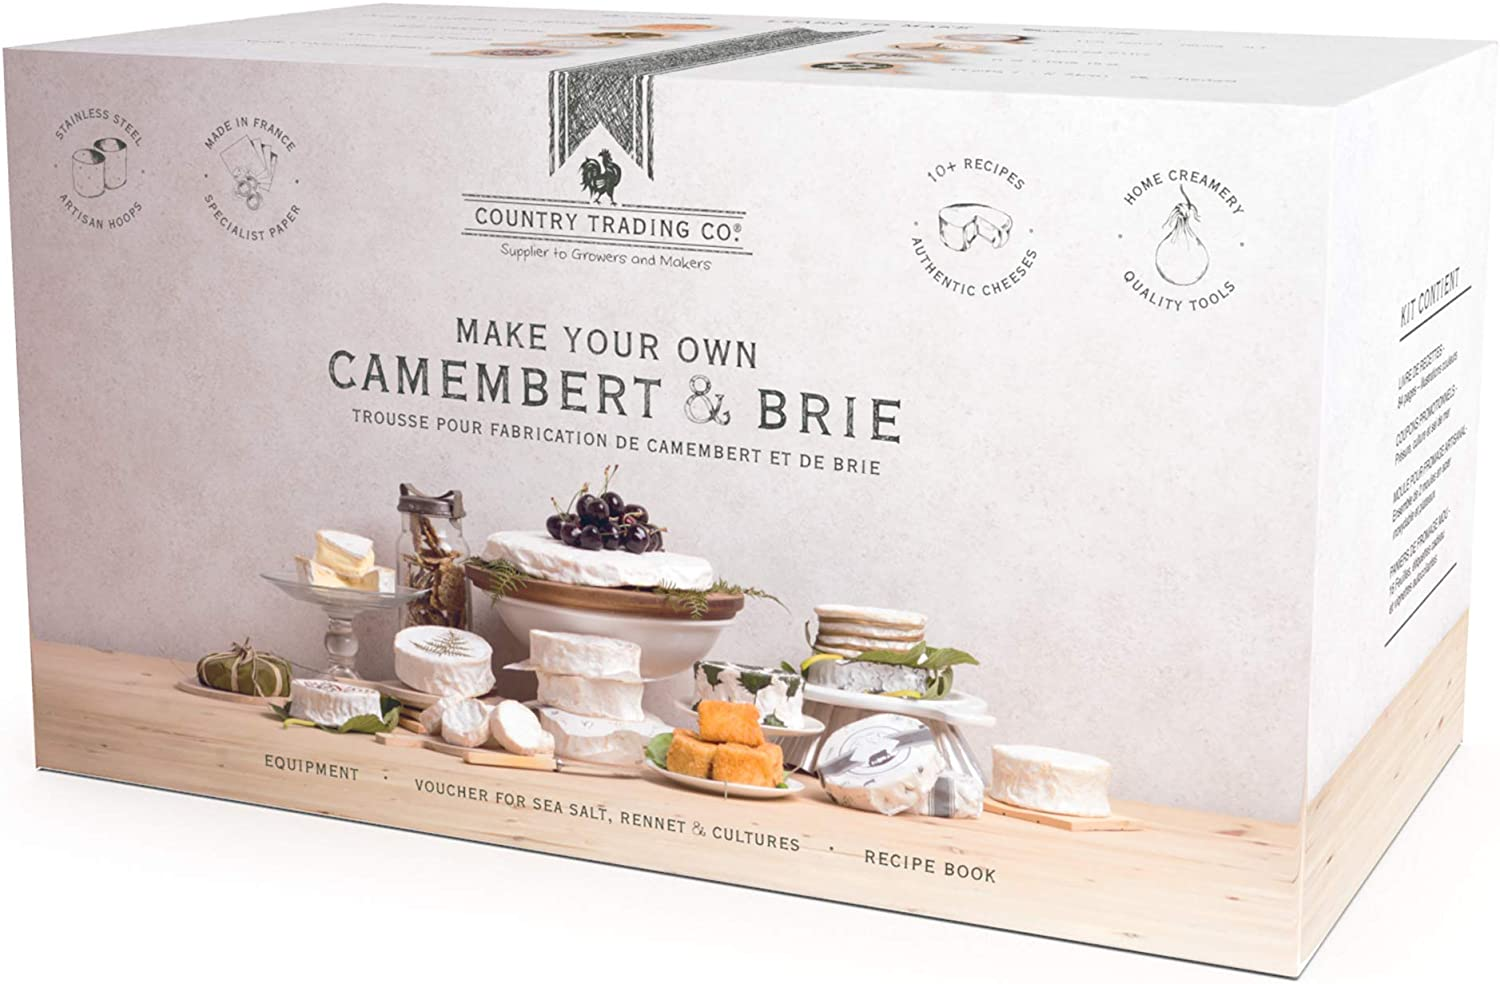 Deluxe Cheese Making Kit: Make Homemade Brie and Camembert with the Ultimate DIY Cheesemaking Starter Pack